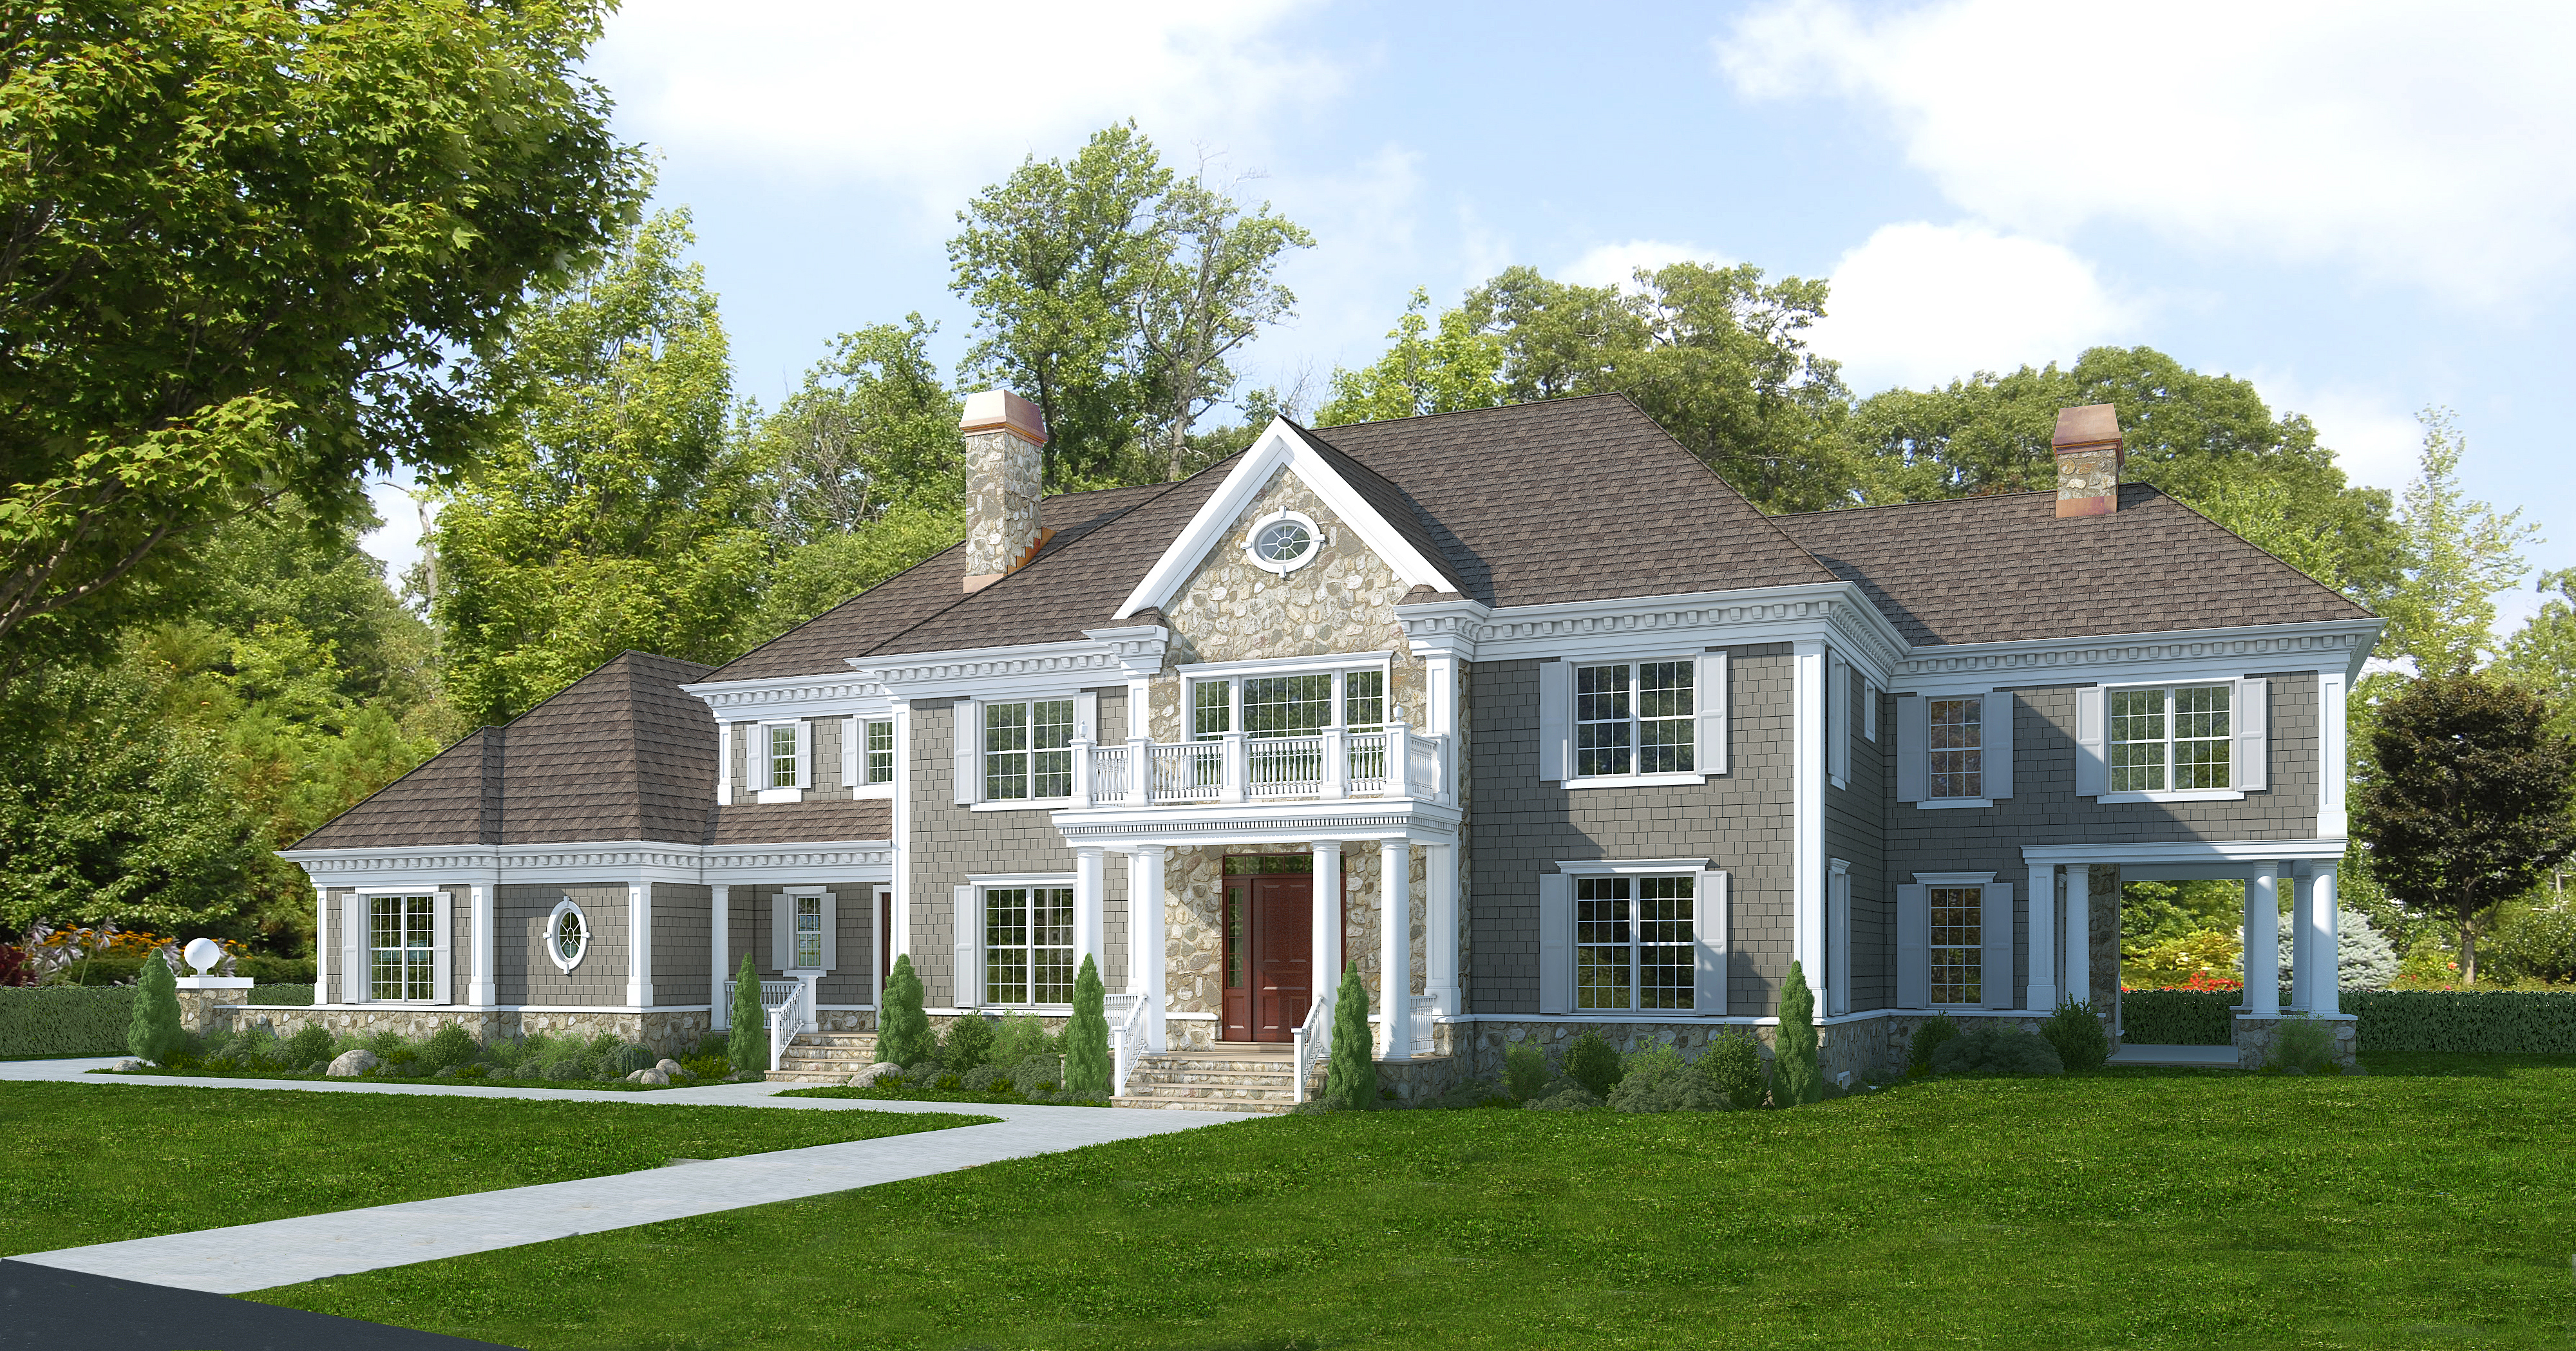 Single Family Home for Sale at 14 Rockledge Road Rye, New York, 10580 United States